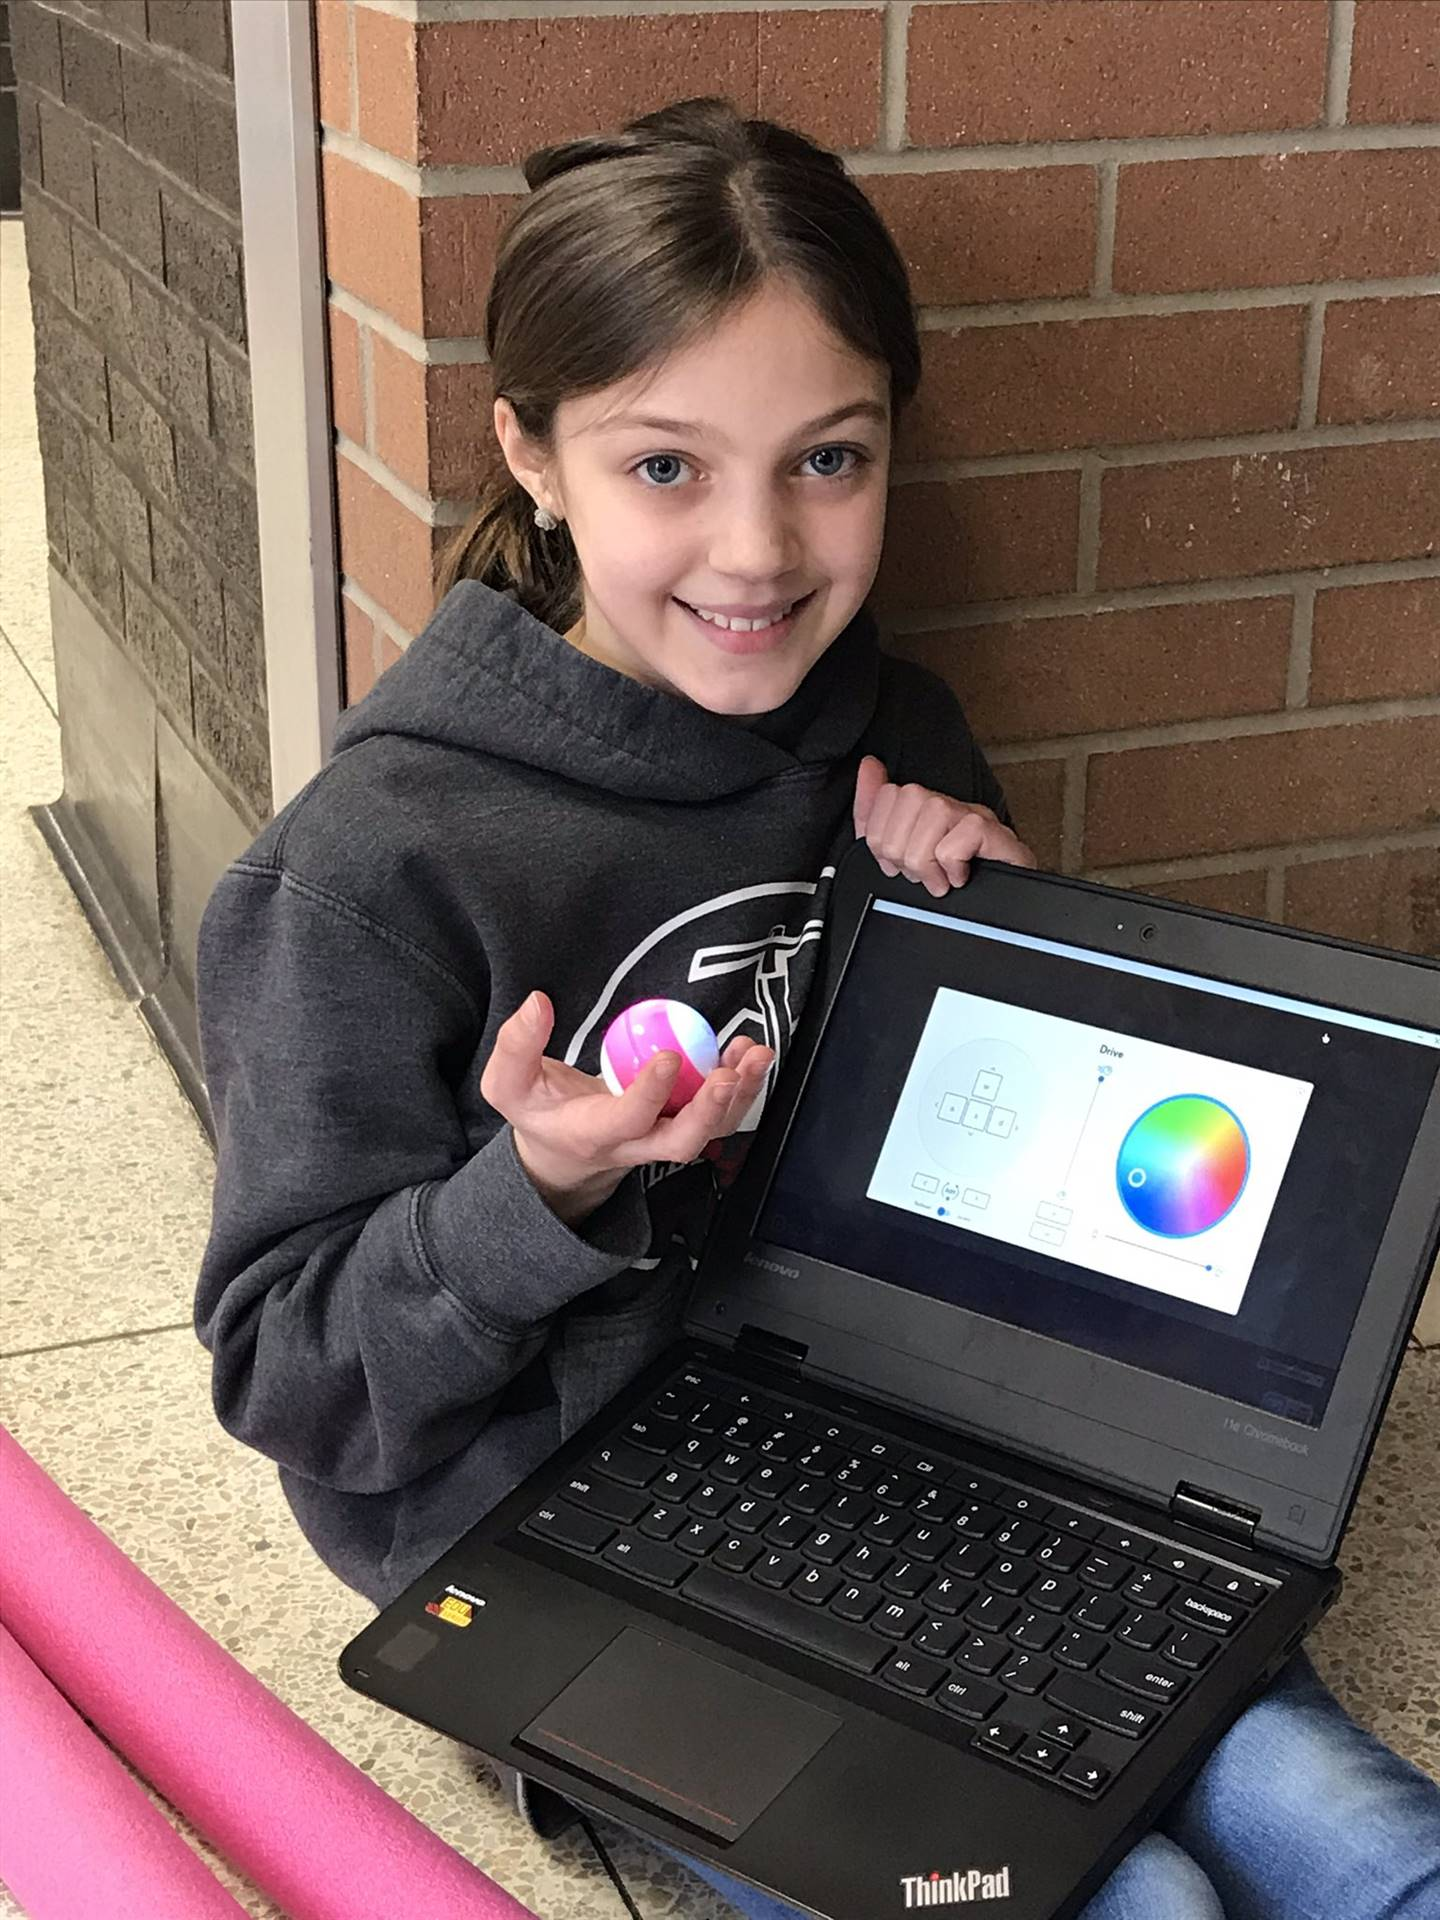 Chardon Middle School - Student Engaged with Spheros